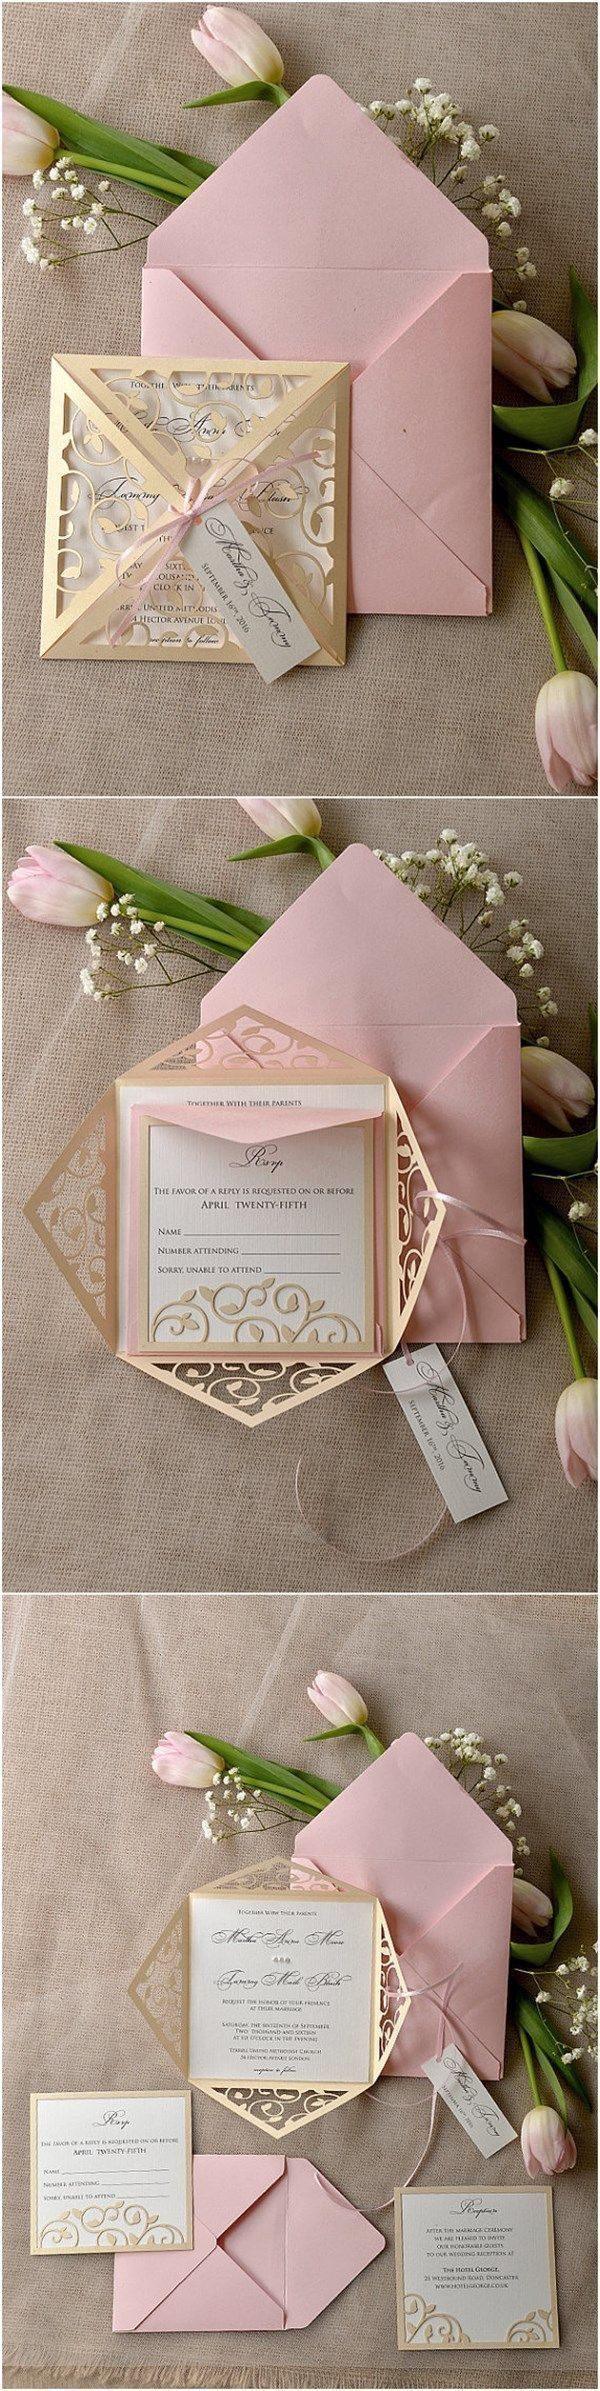 silk box wedding invitations indian%0A Vintage Patel Pink Blush Gold Laser Cut Wedding Invitation  Deer Pearl  Flowers Rose gold and champagne themed wedding